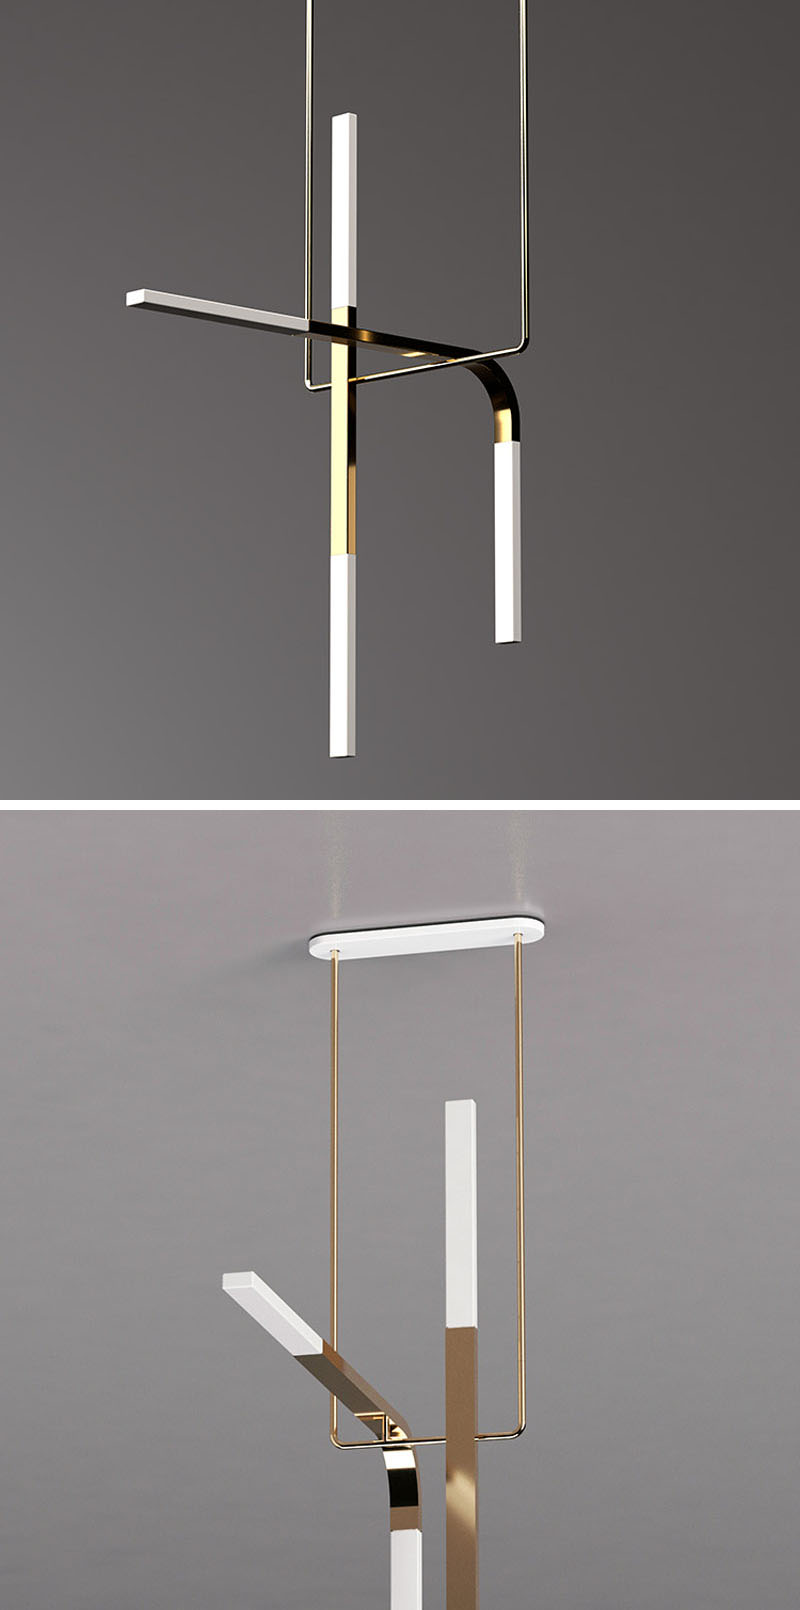 Minimalist Led Lighting Design Inspired By Acrobats